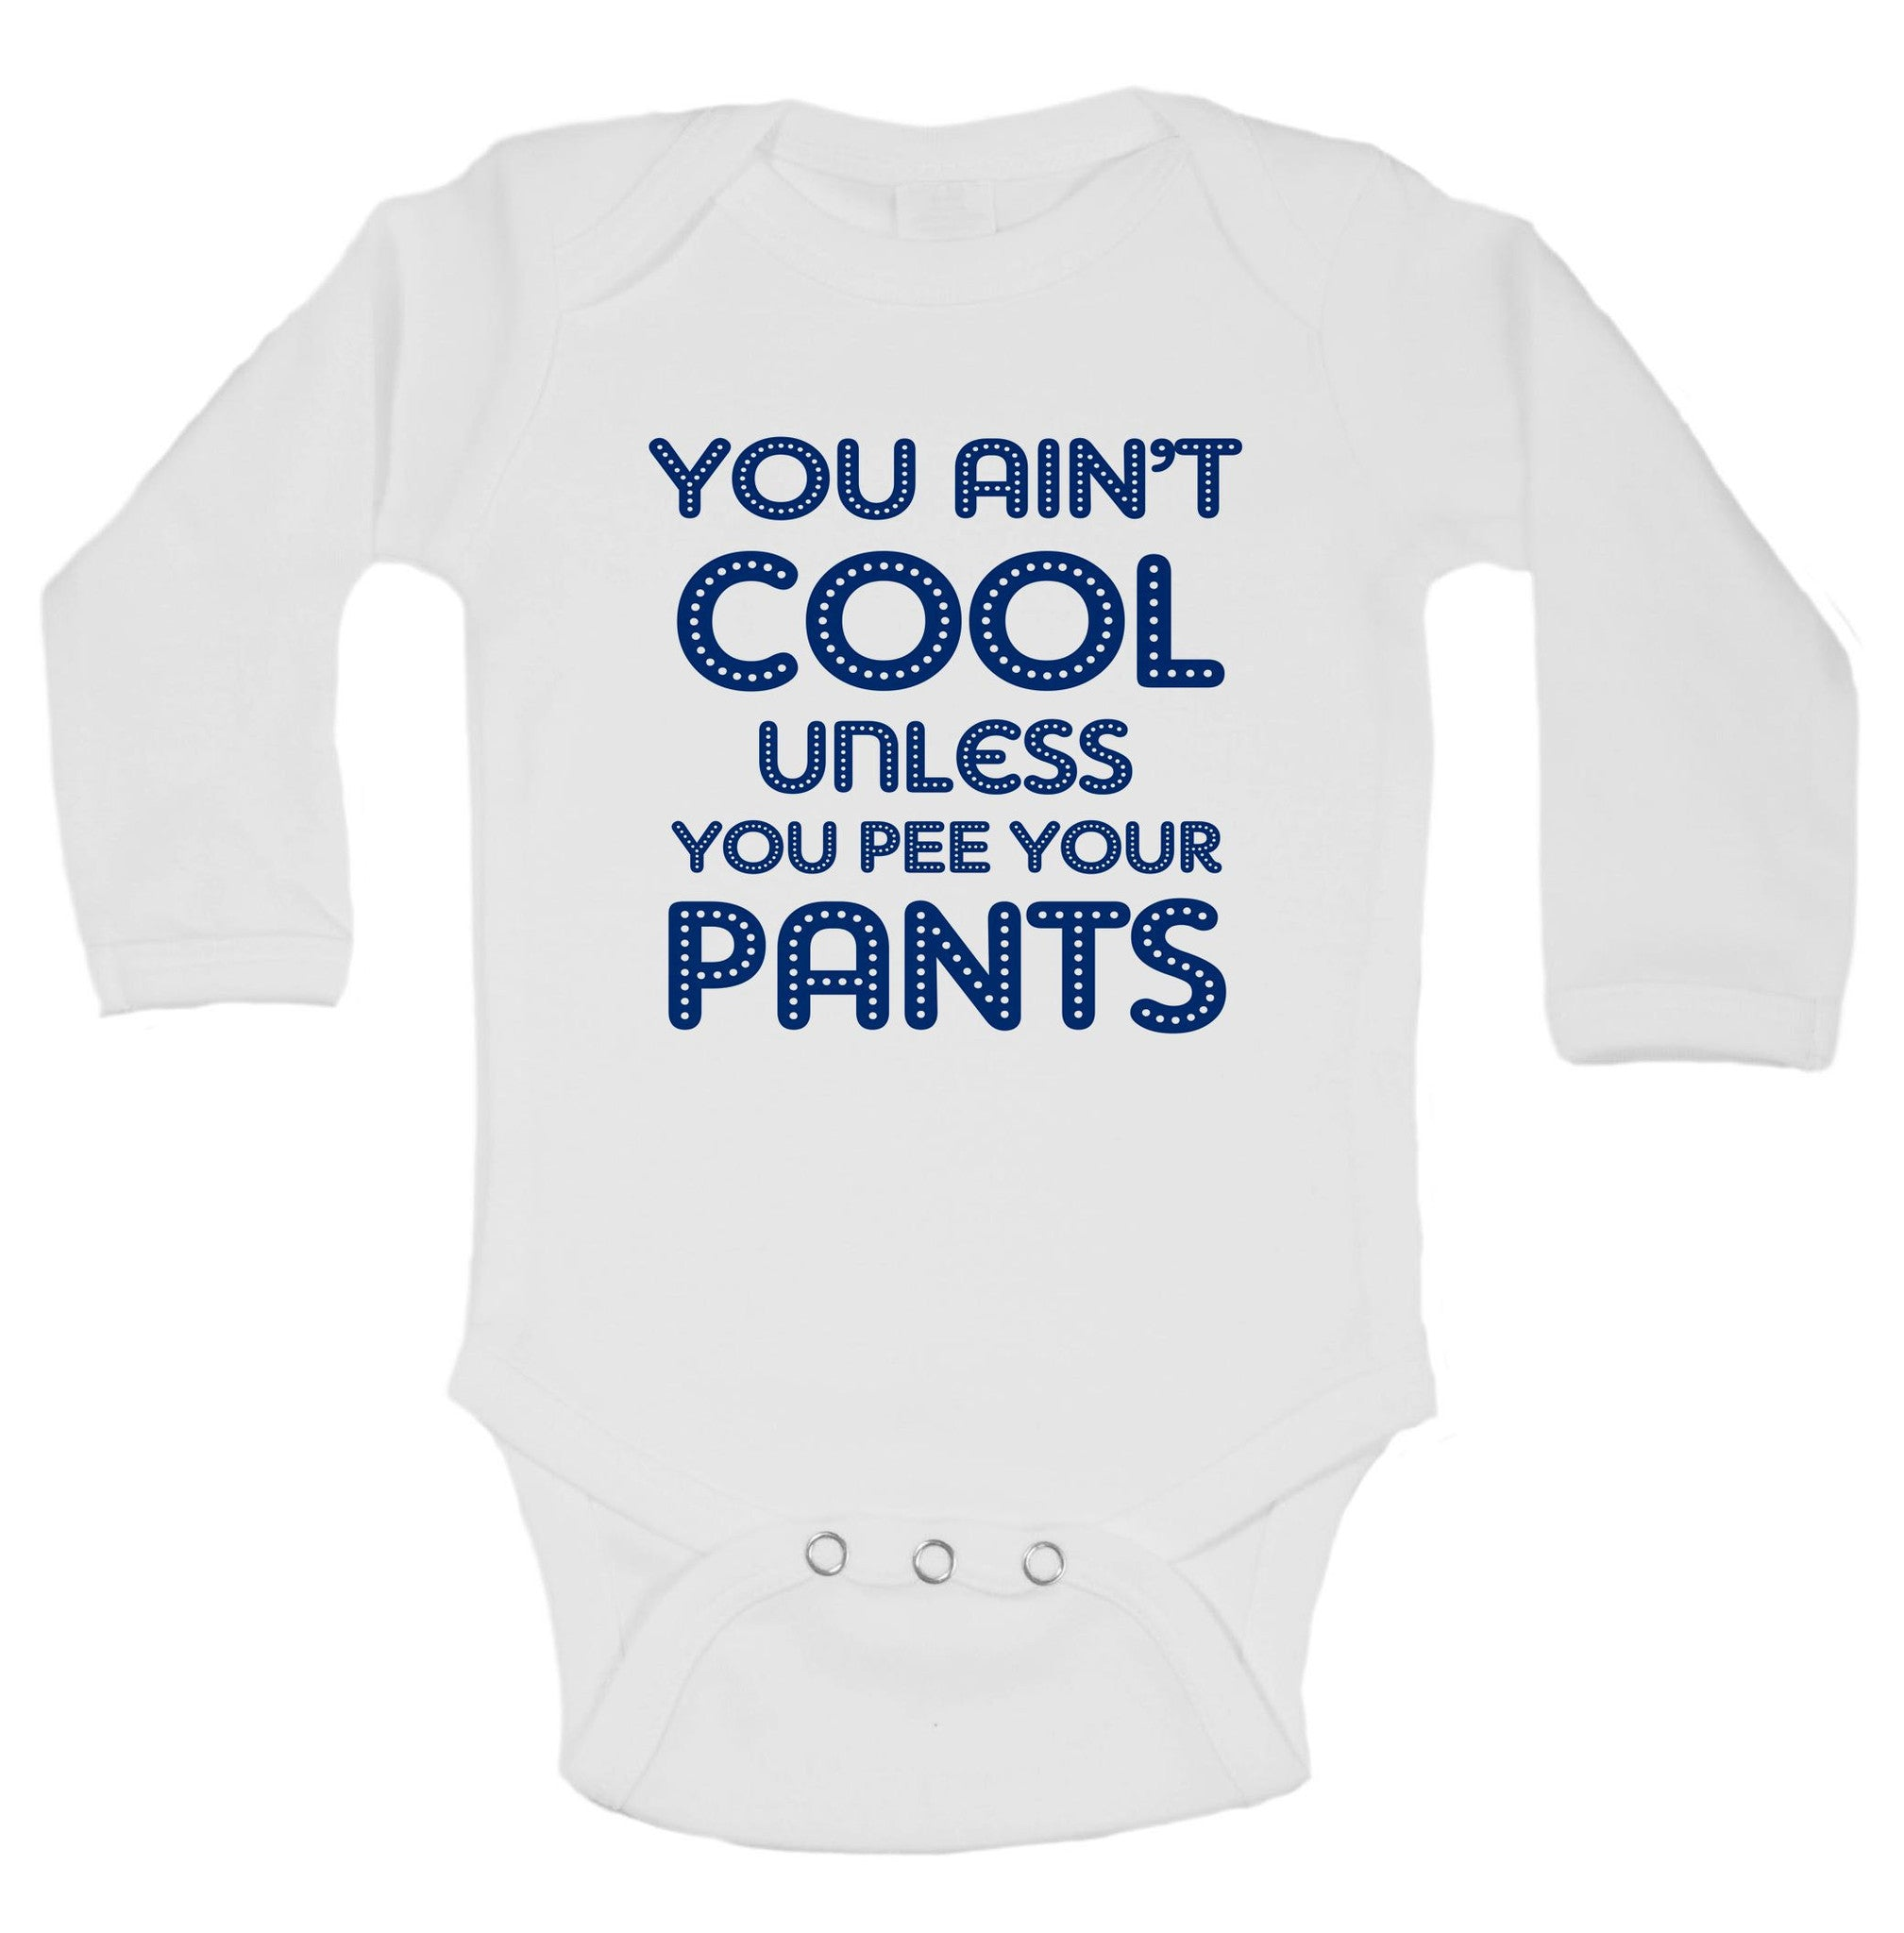 You Ain't Cool Unless You Pee Your Pants Funny Kids Onesie - B15 - Funny Shirts Tank Tops Burnouts and Triblends  - 1